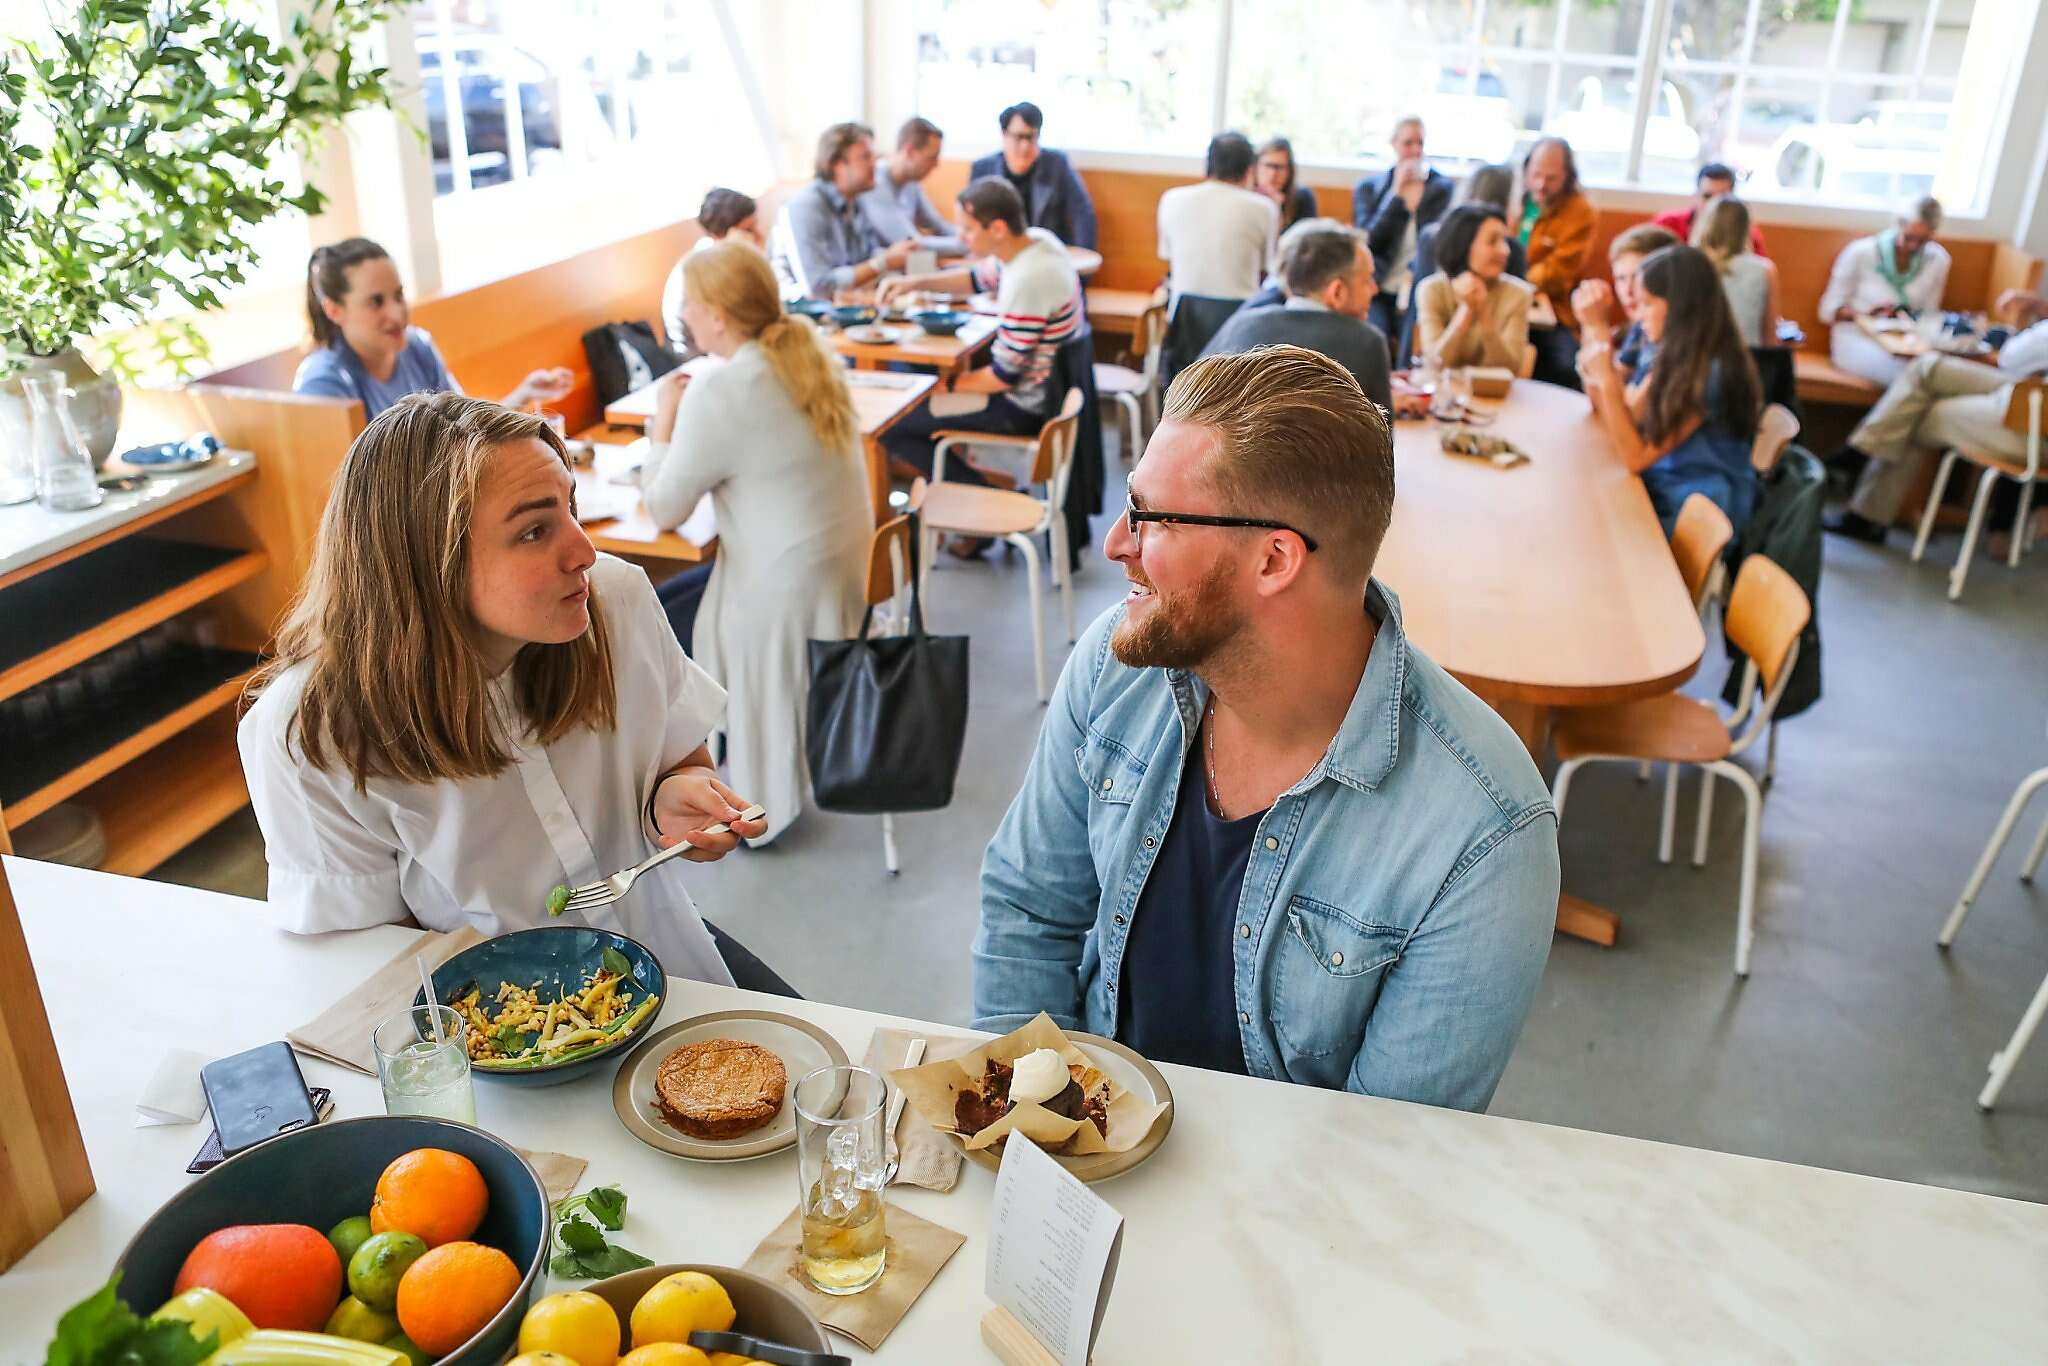 Tartine Manufactory nabs spot on Food & Wine's Restaurants of the Year